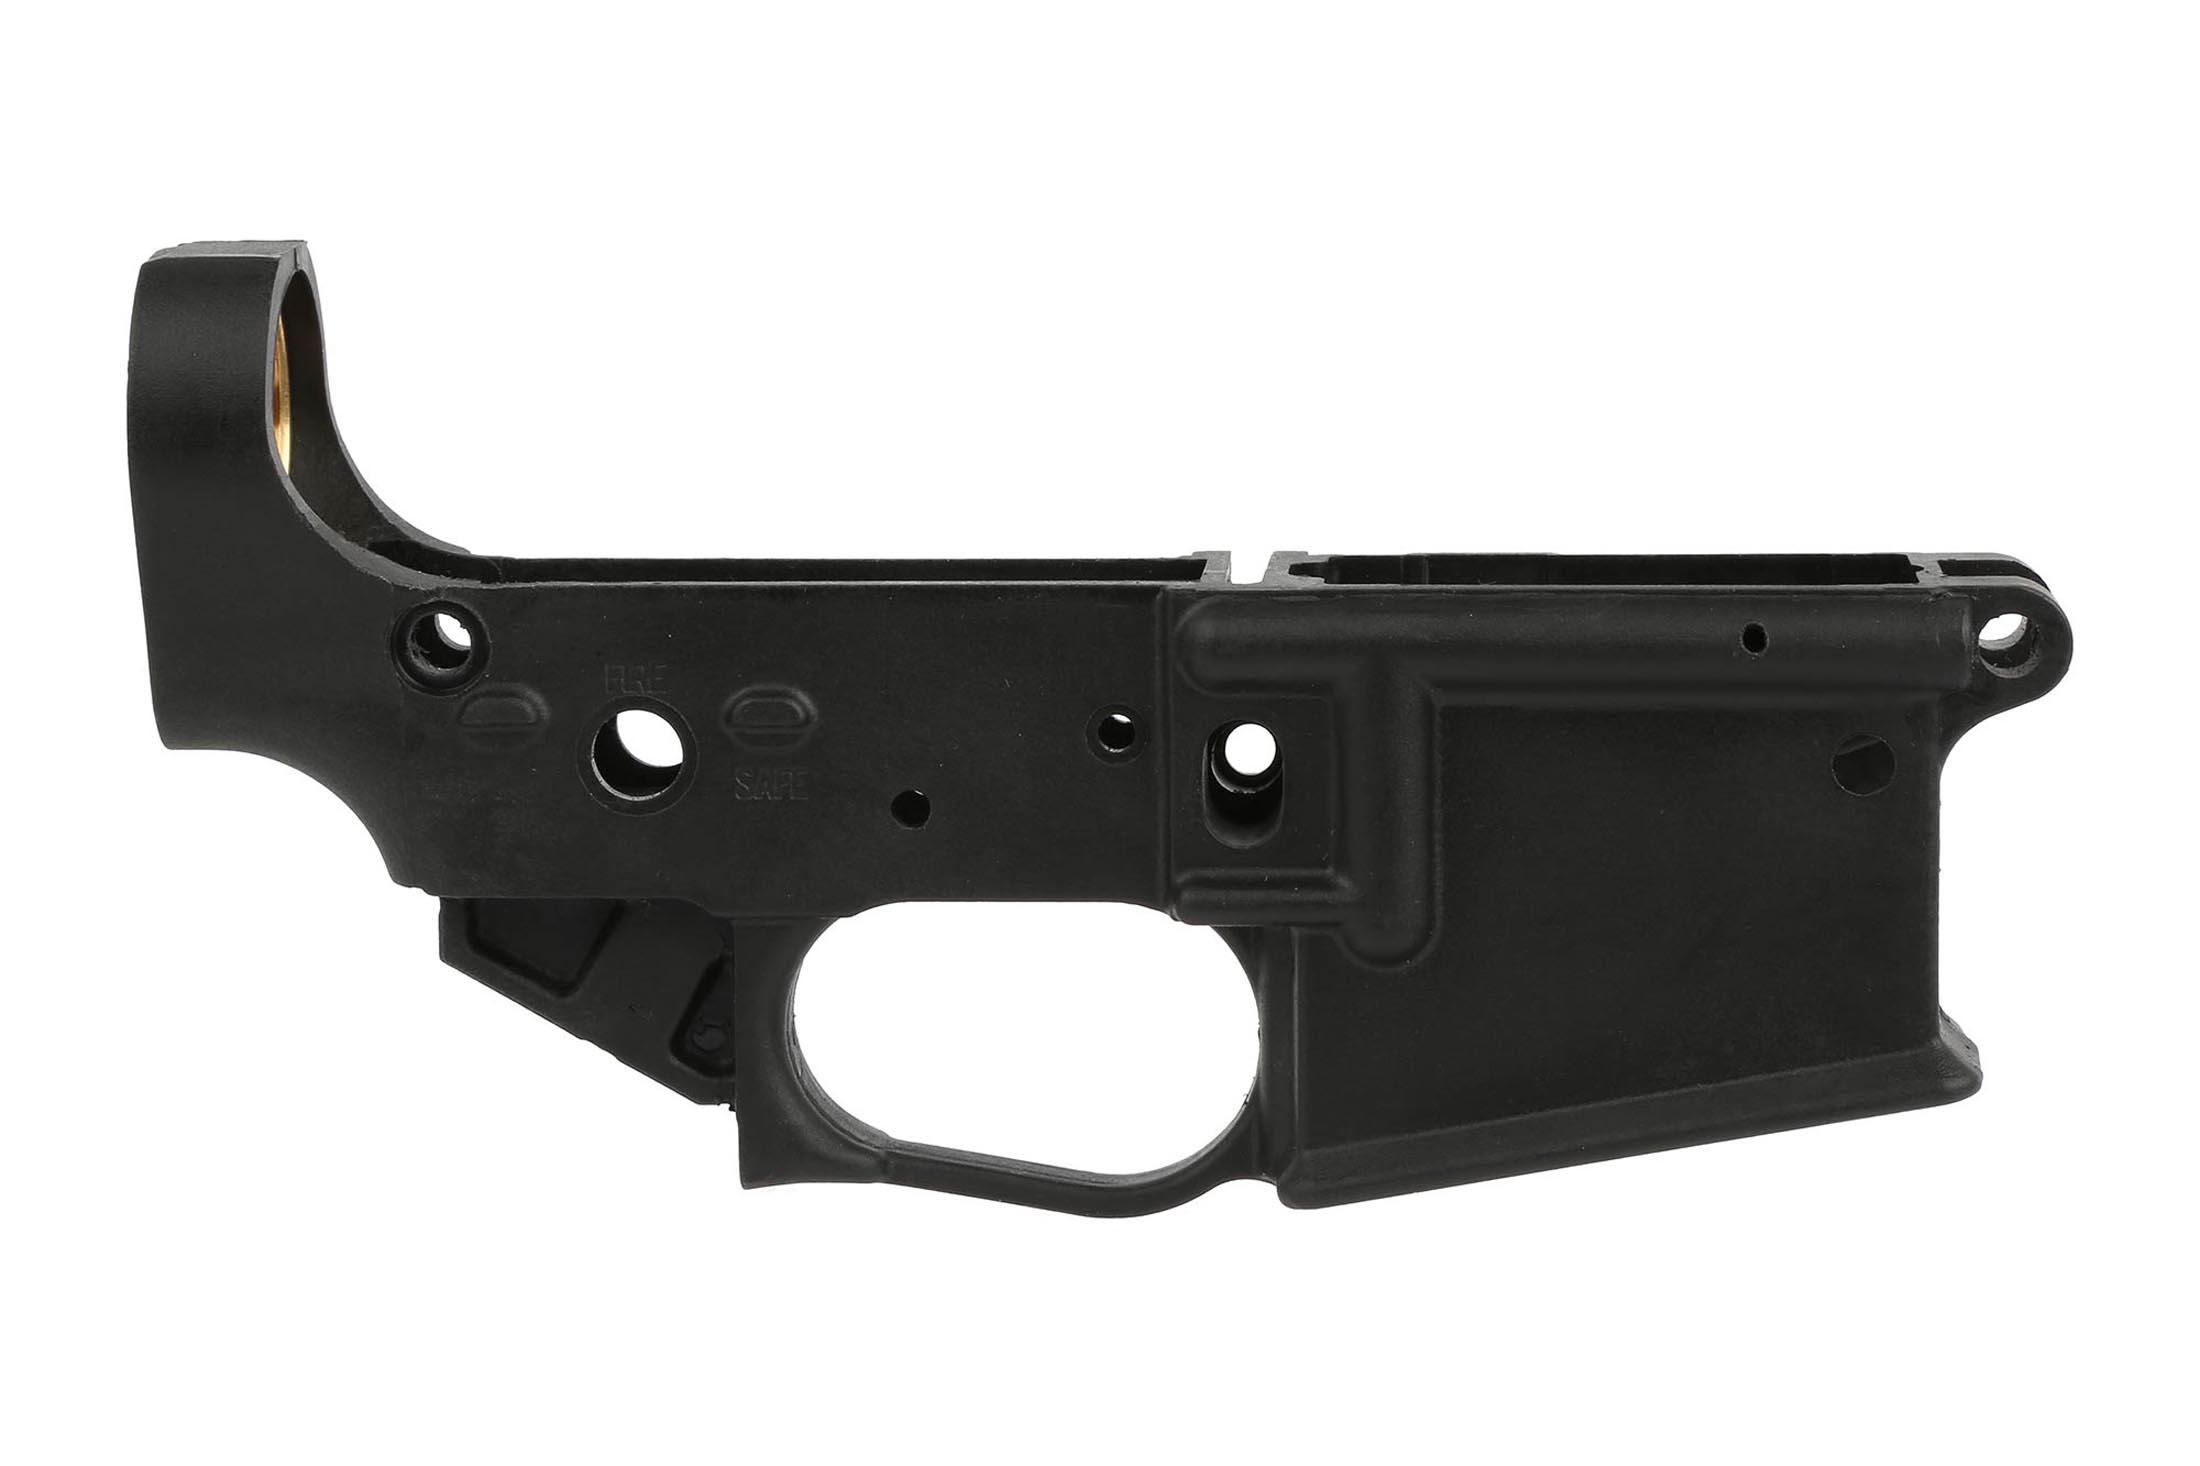 The Tn Arms Company Polymer Ar 15 Lower Receiver Is Compatible With Mil Spec